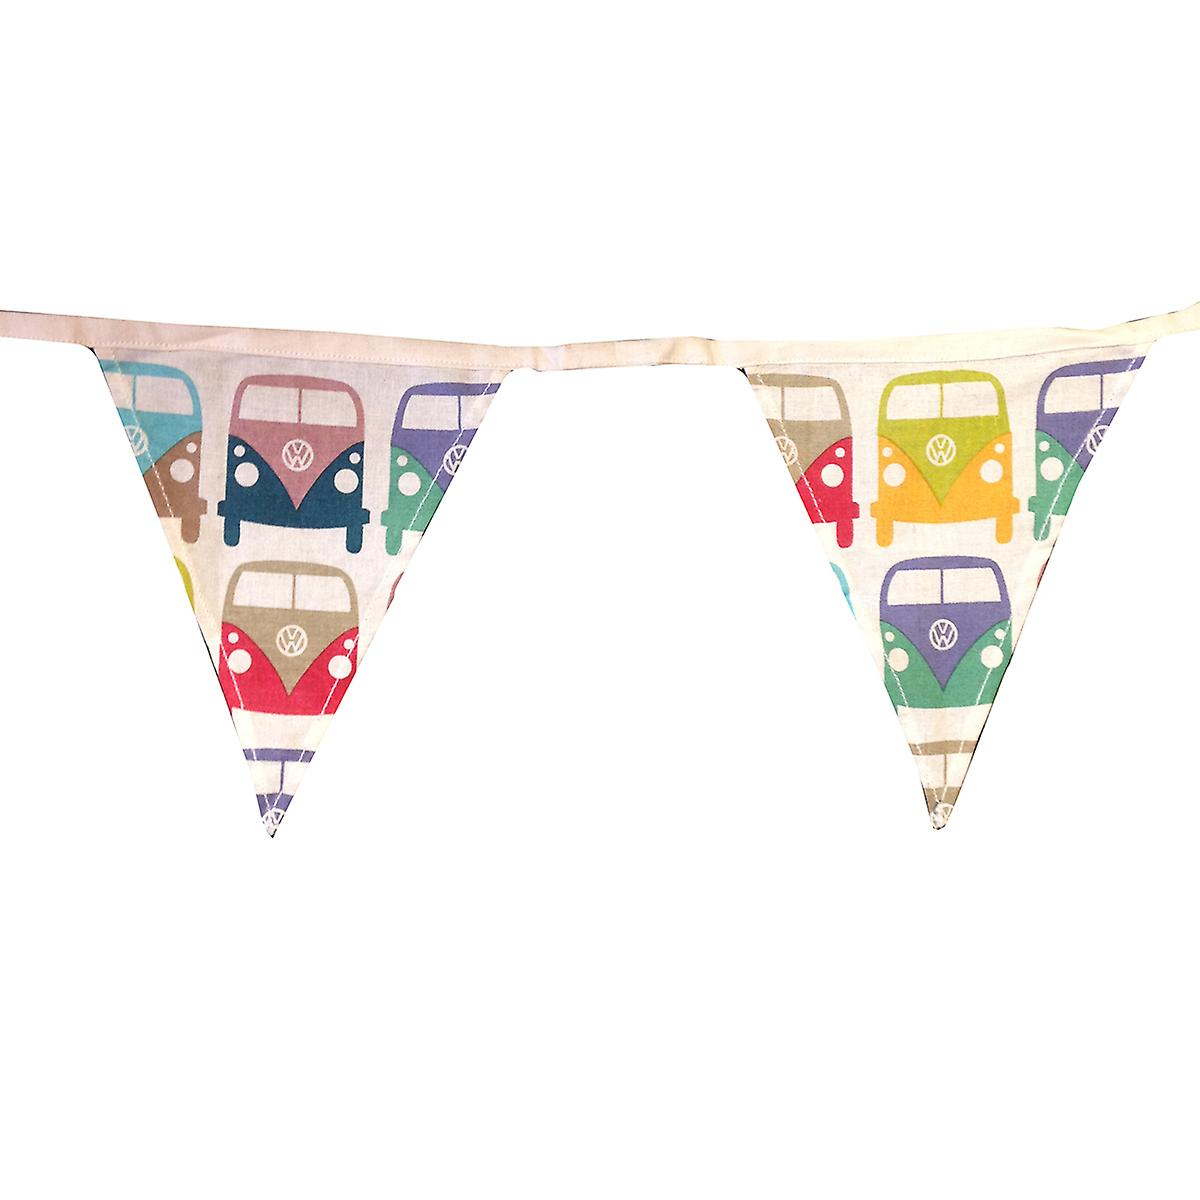 Official VW Camper Van Cotton Fabric Bunting - Montage